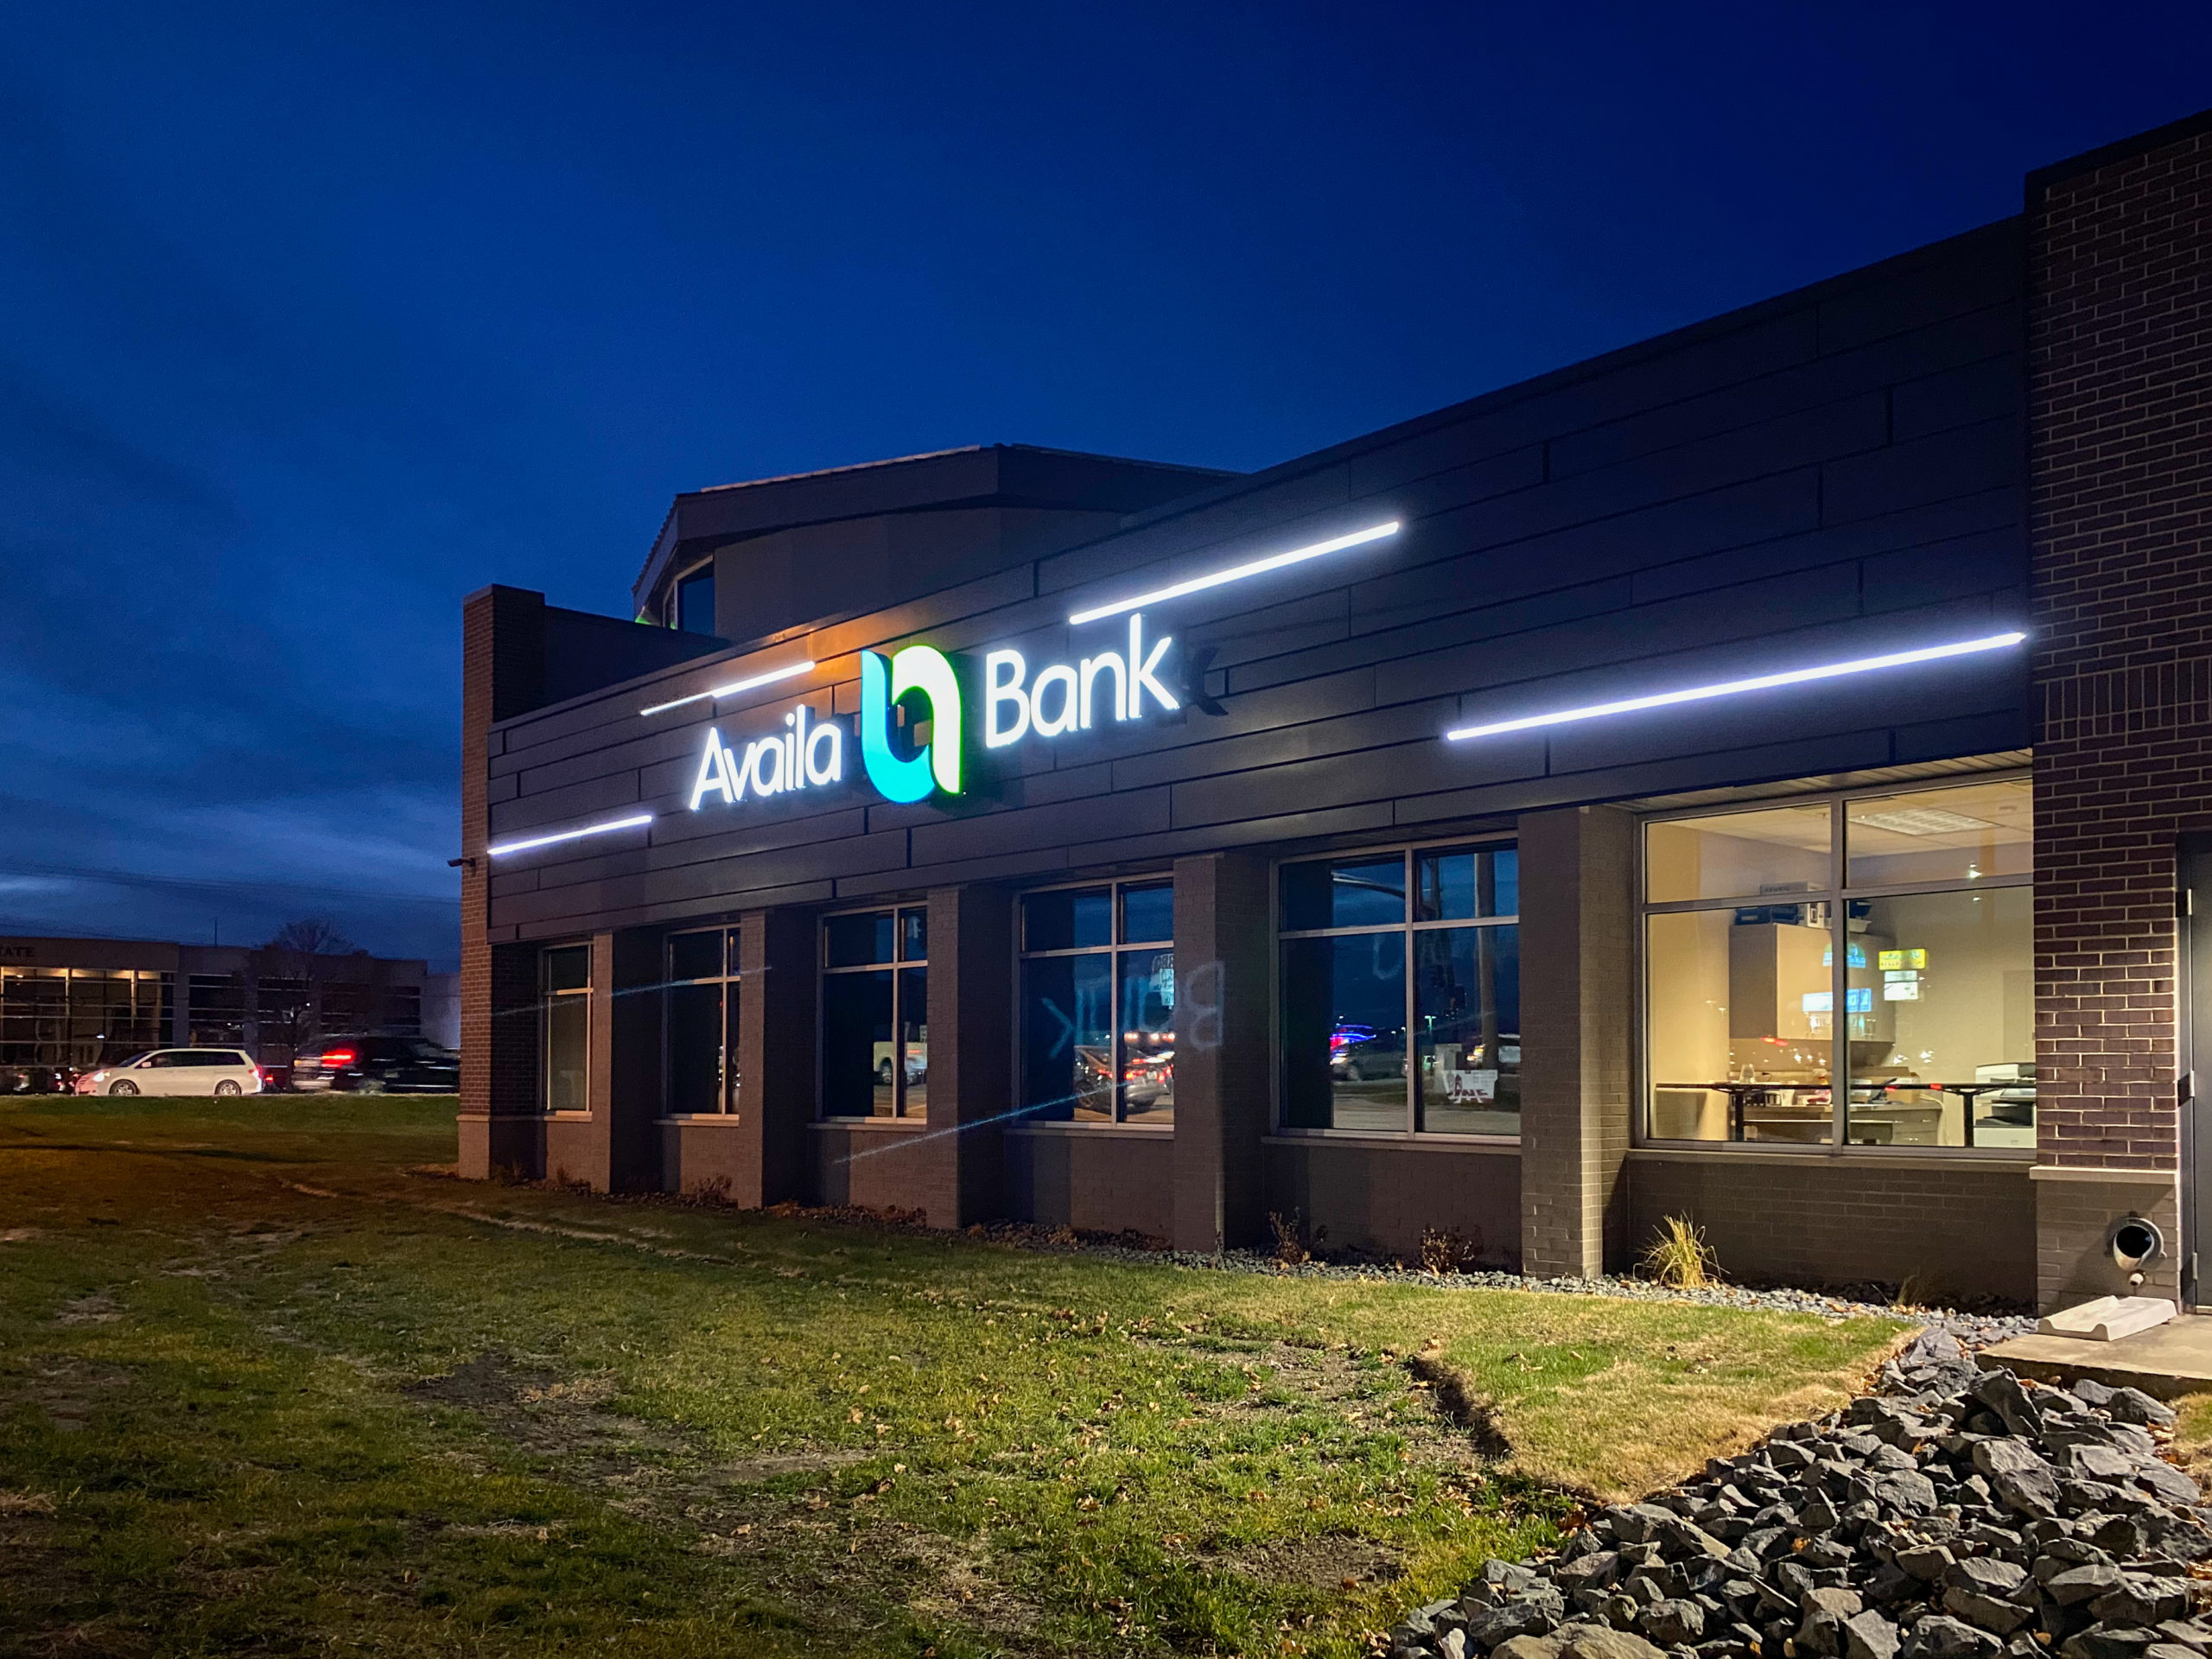 Availa Bank Brightens Up New Ames Location